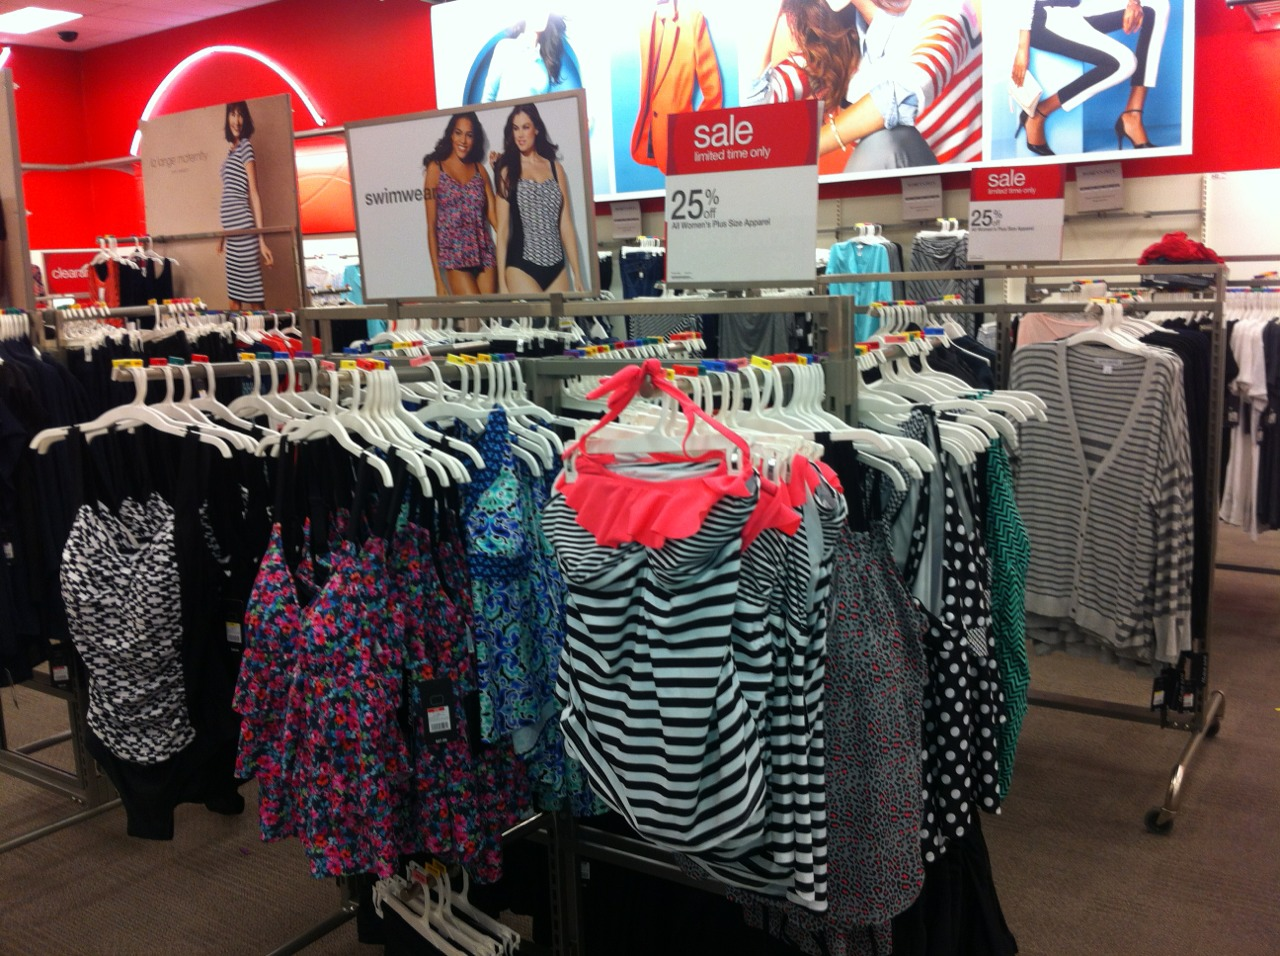 0415d6b479a Target got the revamped Pure Energy line in. It s alright. The swimsuits  were hit and miss. A few suits are missing the youthful element.